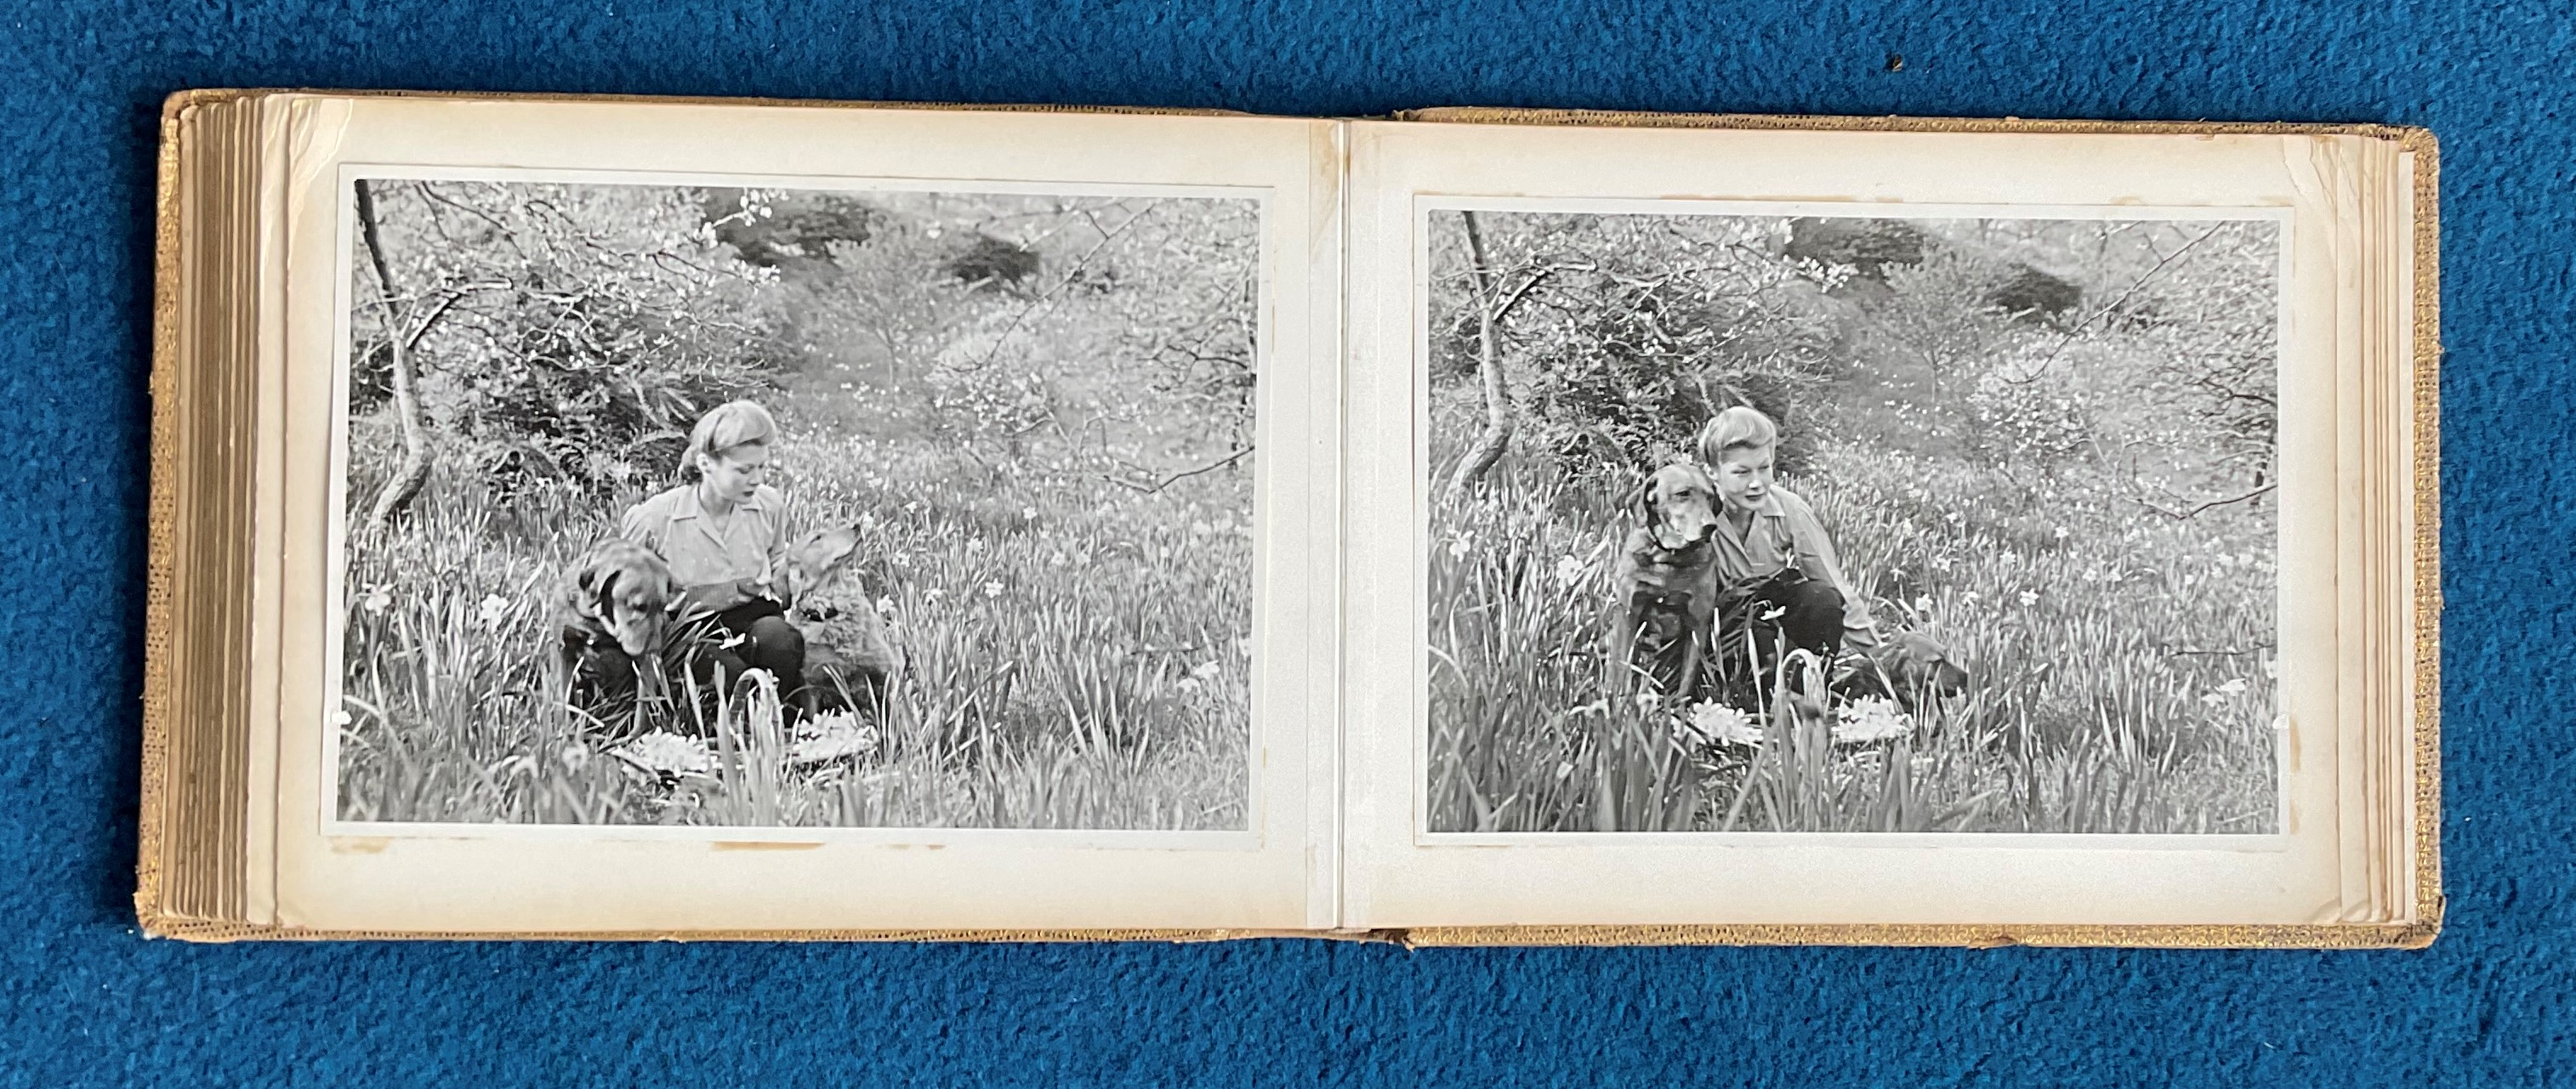 Sir Archibald McIndoe Family Photo Album plus 5 Hardback Books from His personal collection - Image 22 of 23